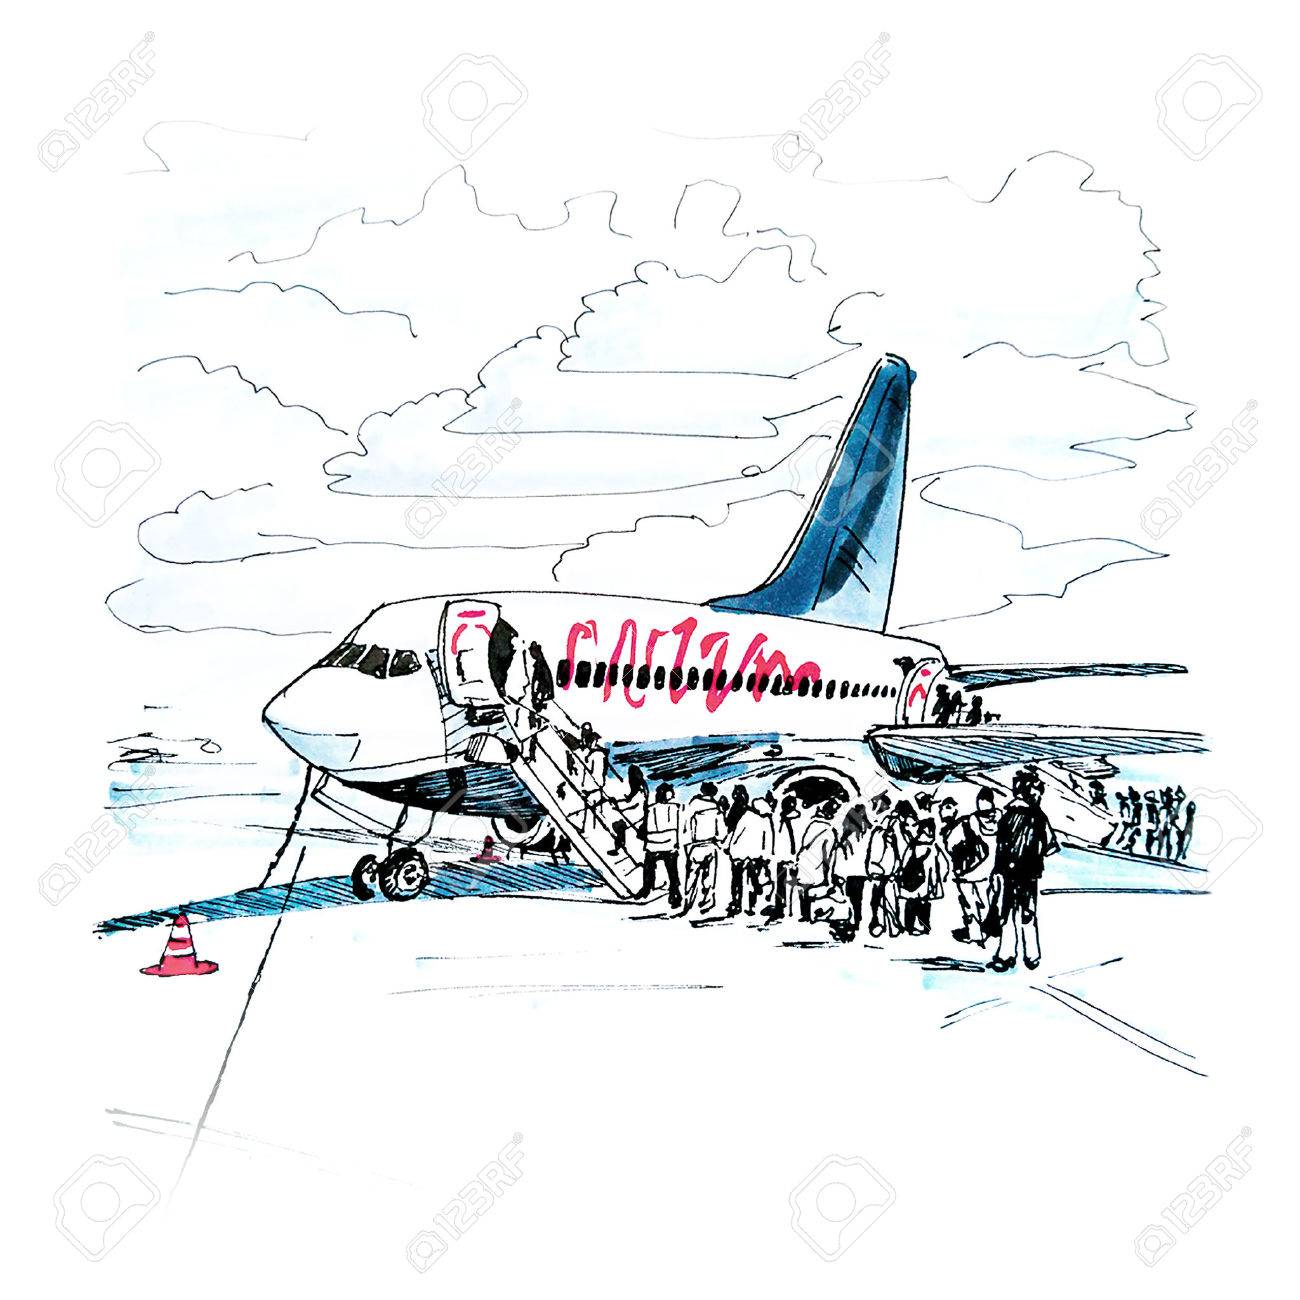 Color hand drawing, embarking passengers on the plane at the